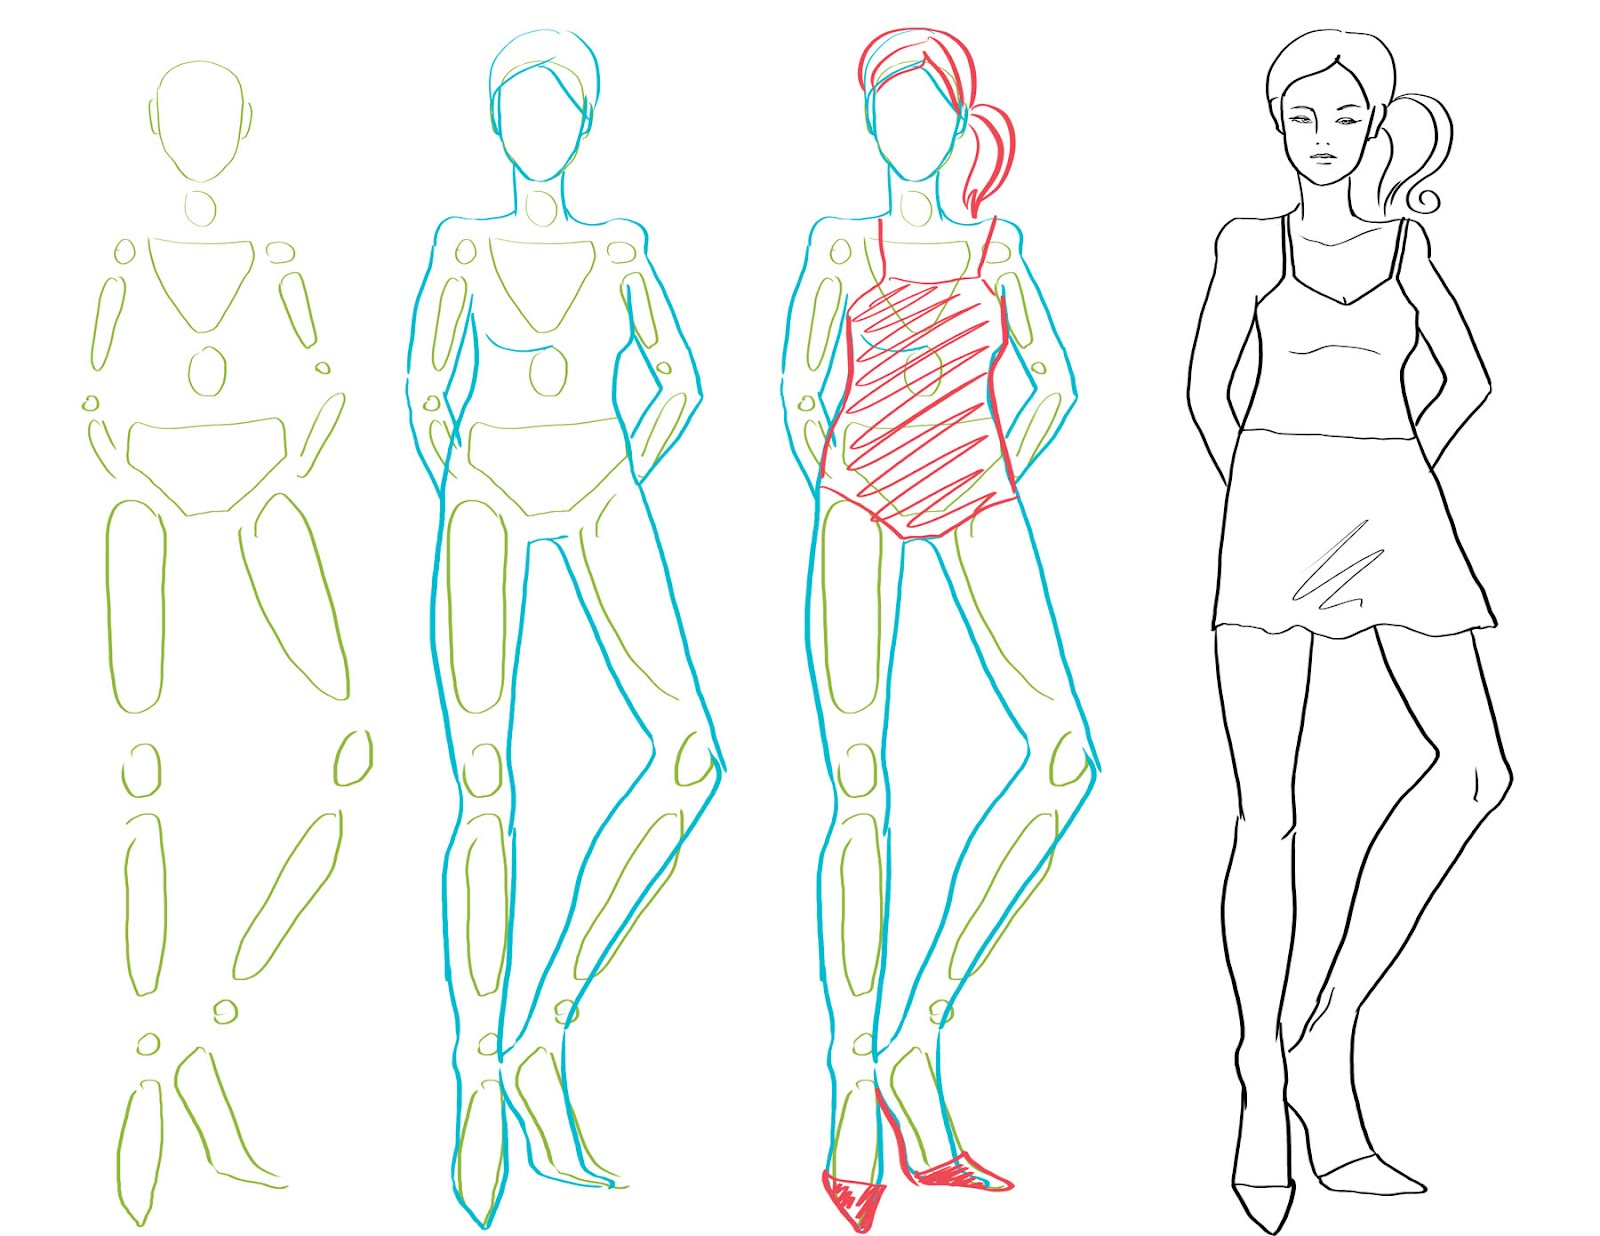 How To Draw Fashion: How to Draw the Body / Fashion Figure Drawing: www.howtodrawfashion.com/p/figure-drawing.html